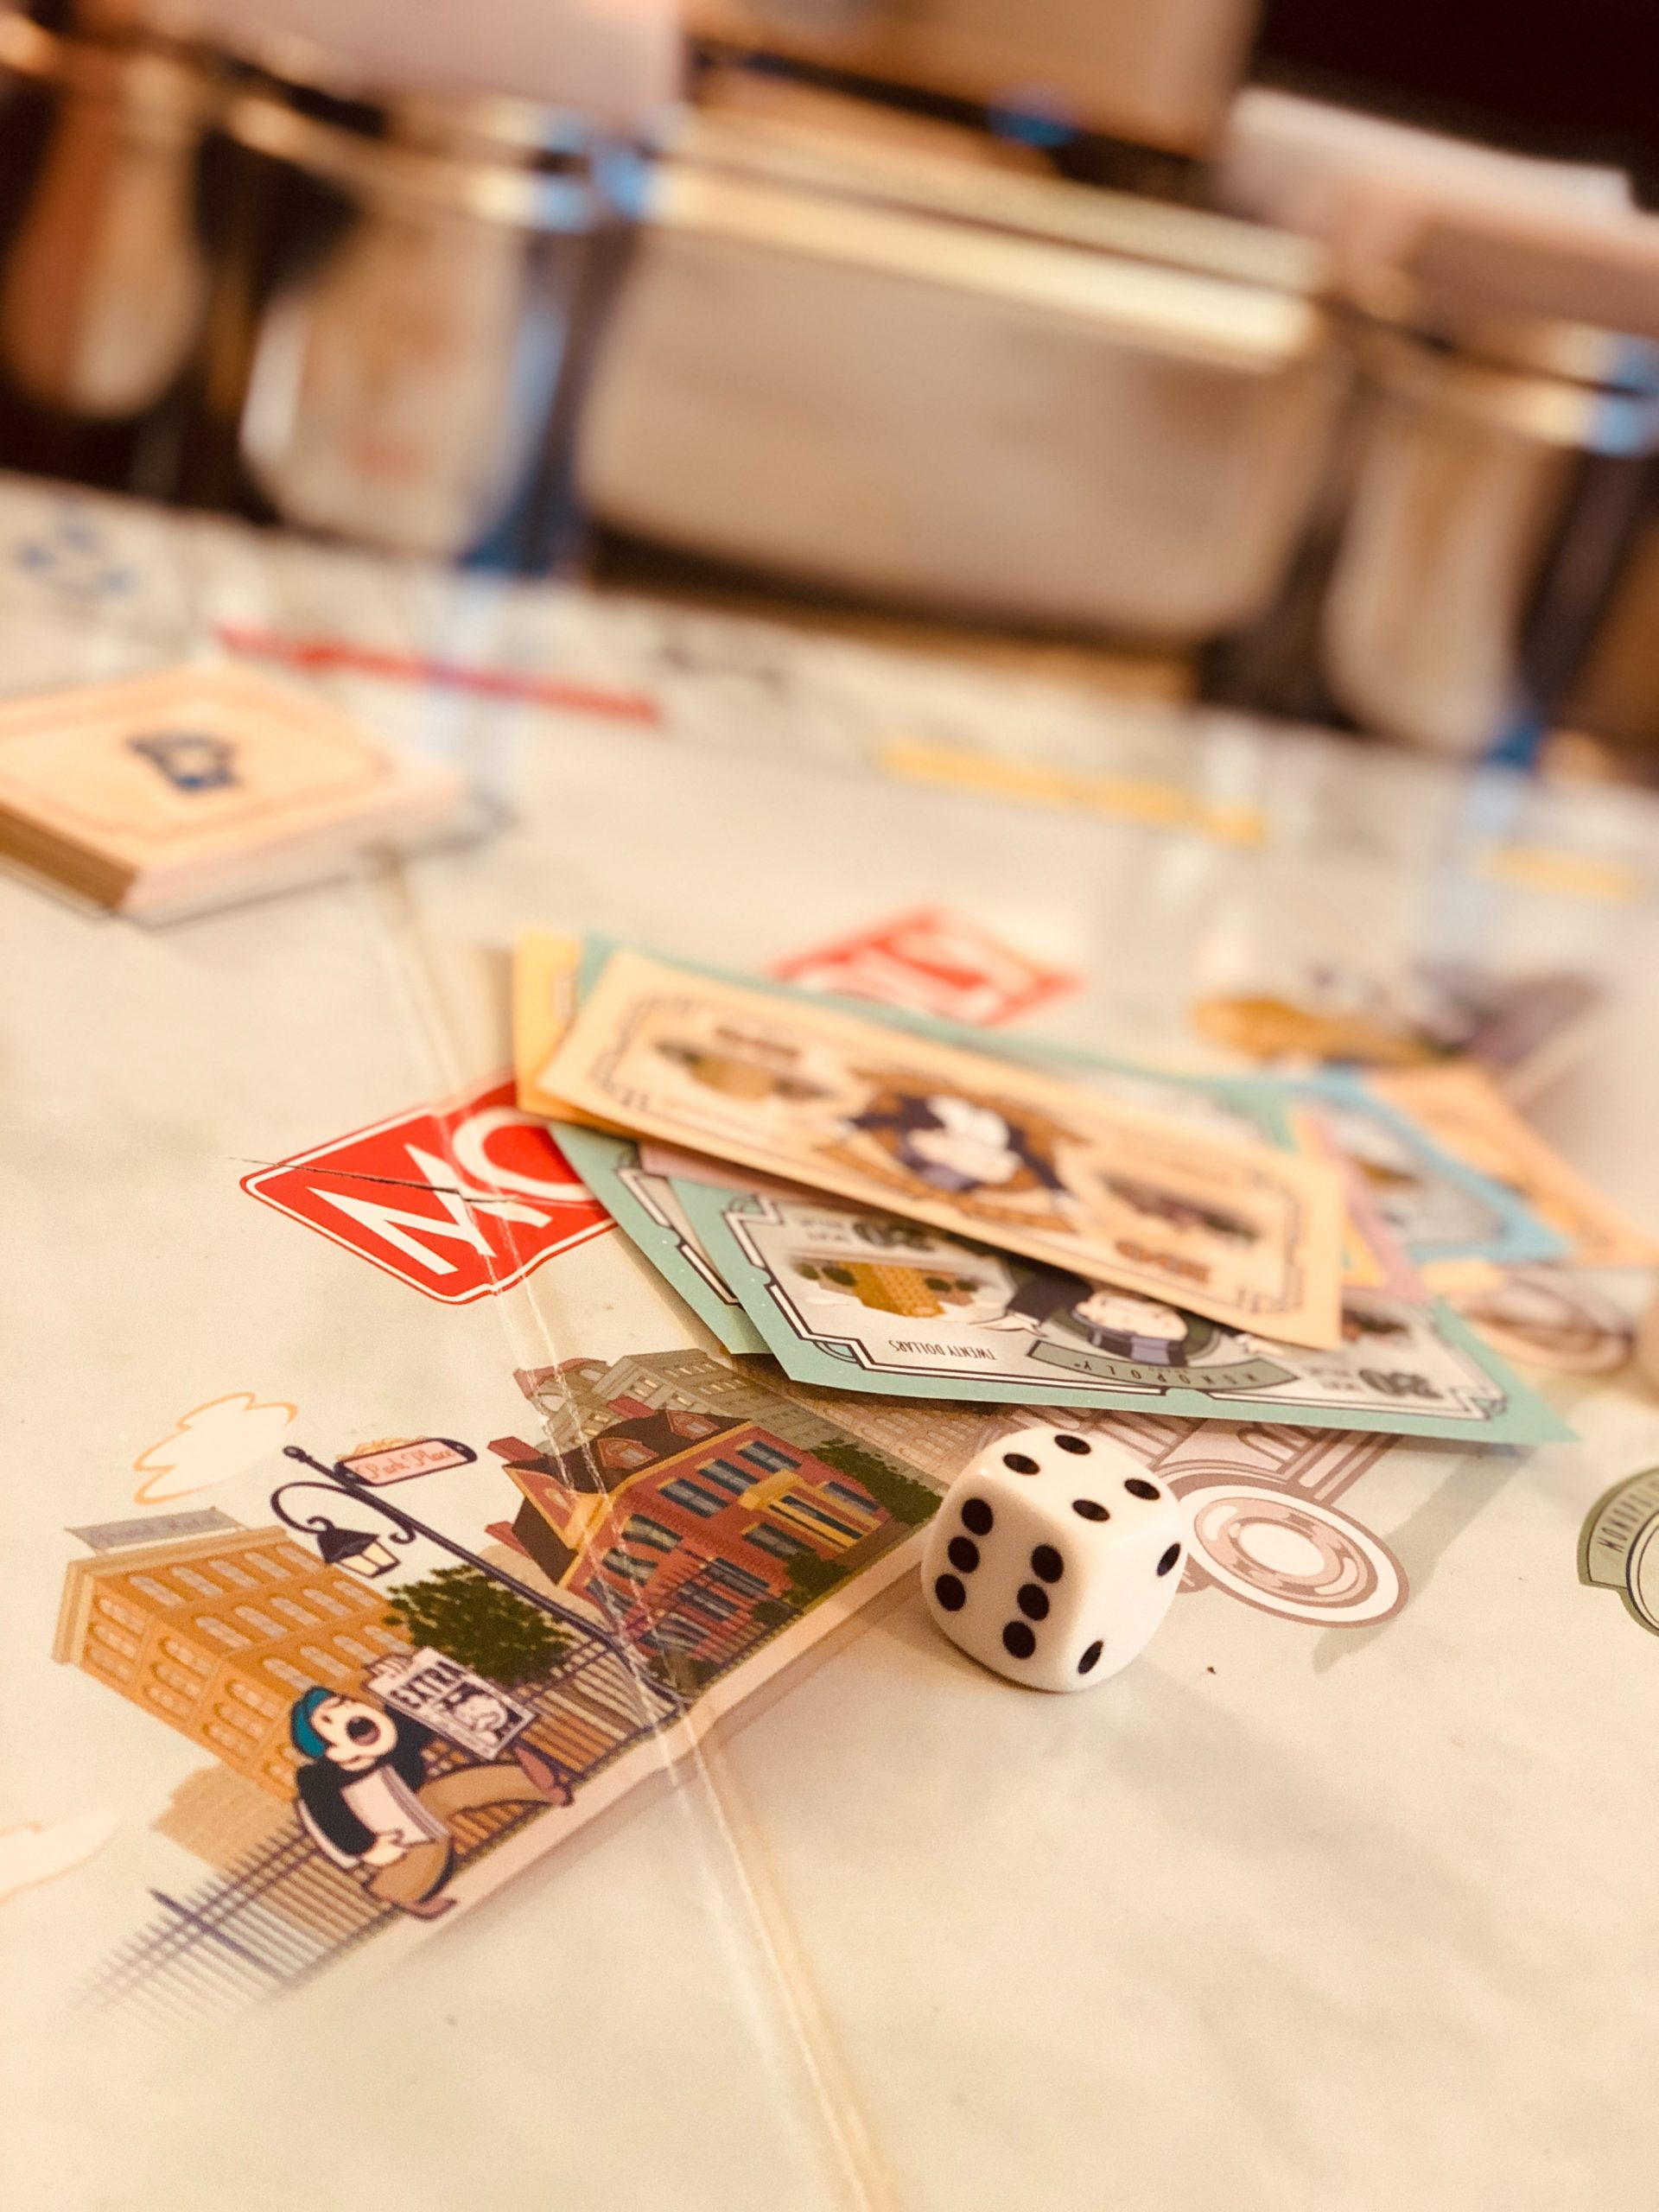 Monopoly game board, cards, and dice on a table.